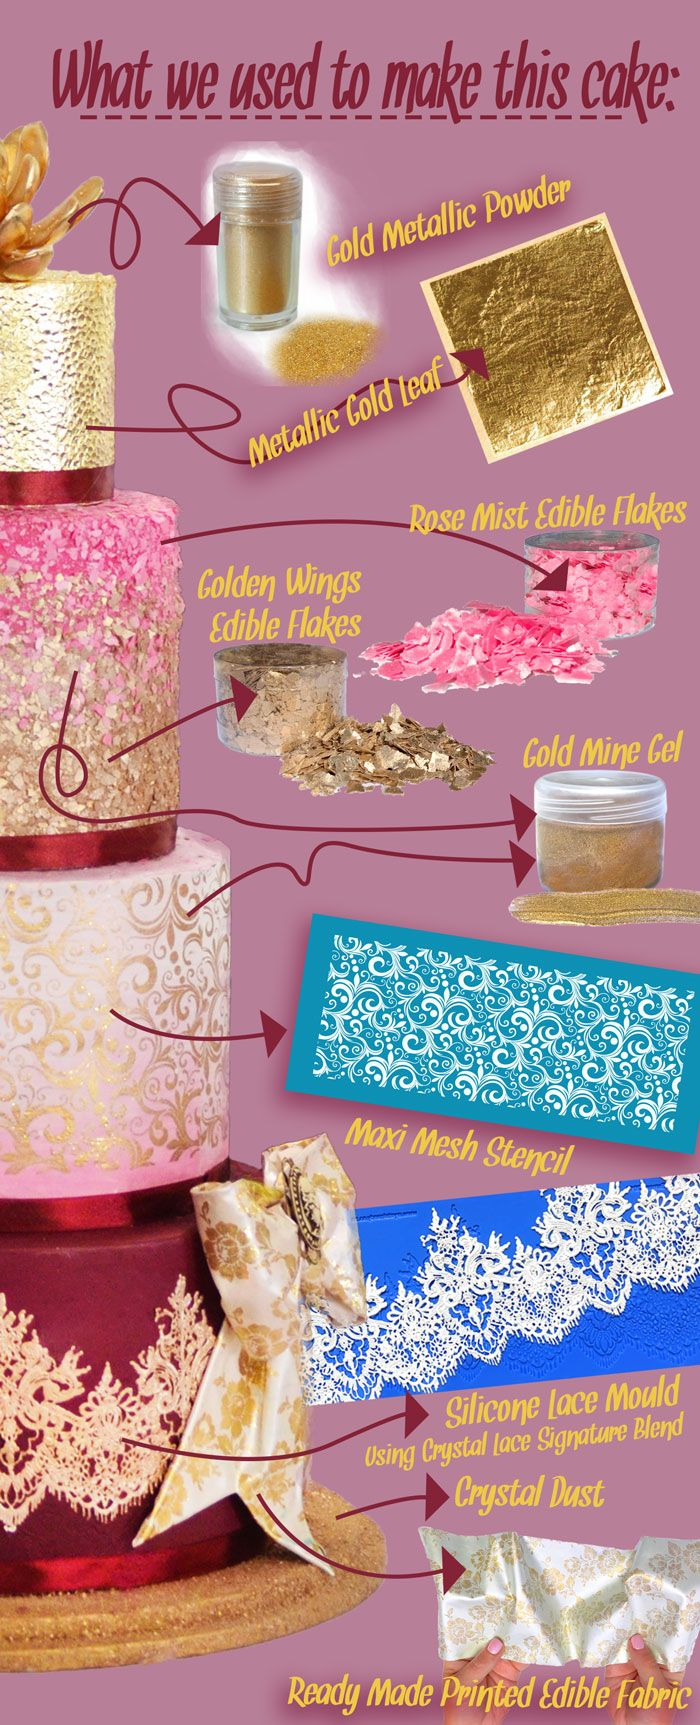 PINK & GOLD!!!! Have a look at what we used to make this